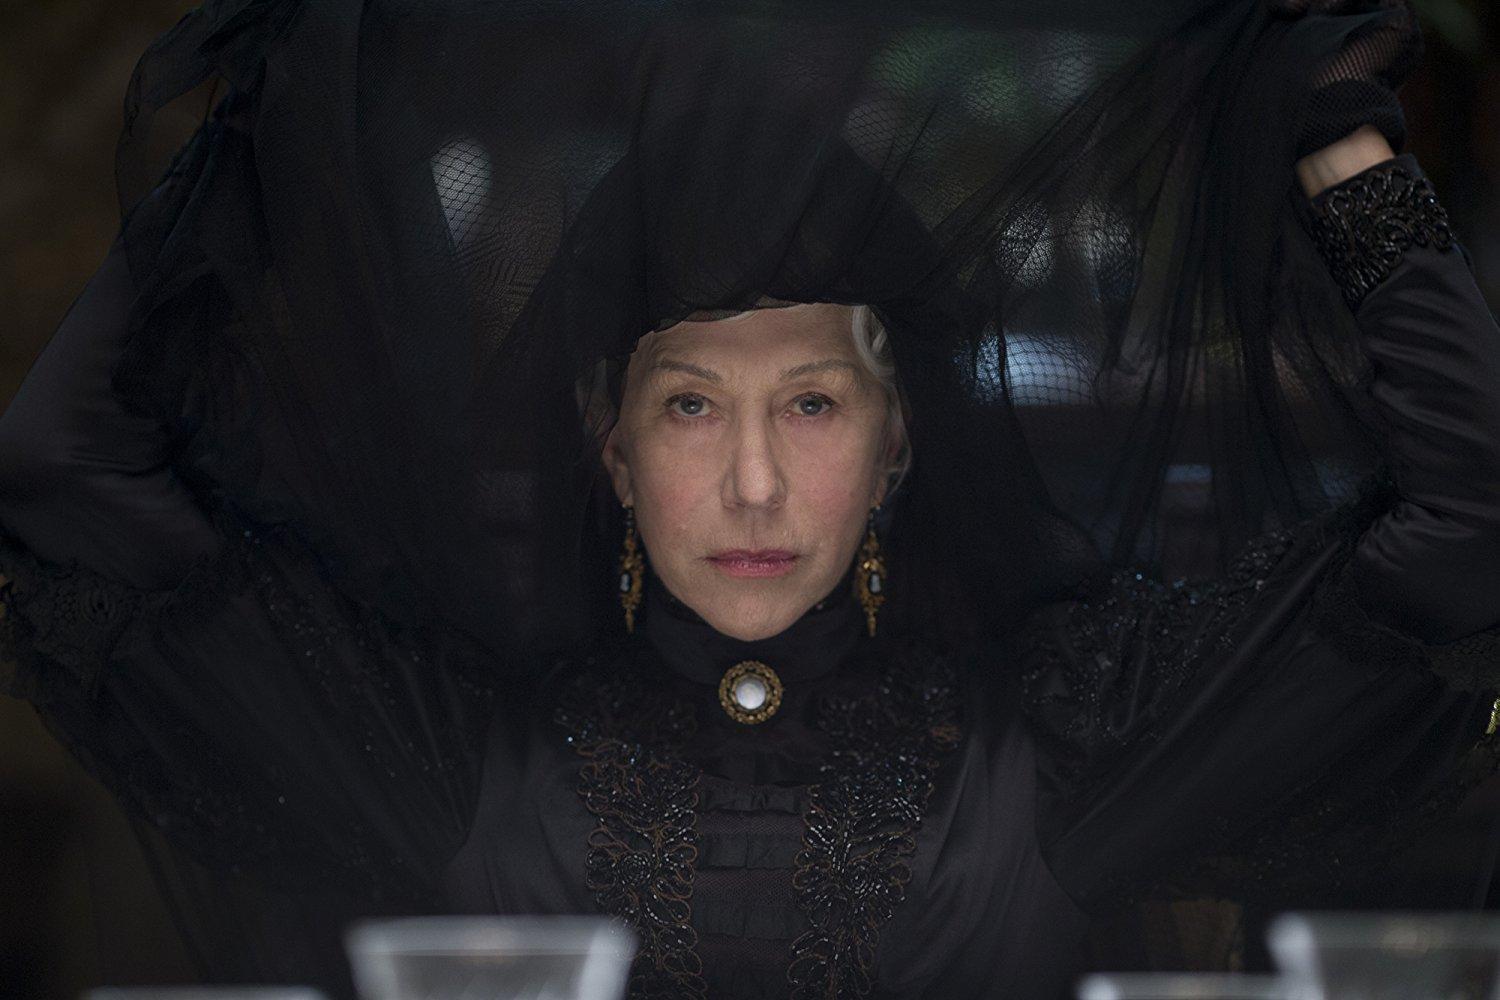 "LIONSGATE, CBS FILM Helen Mirren plays Sarah Winchester, a widow who inherits the Winchester Repeating Arms Company. She fears the ghosts of the those killed by the firearms manufactured by her company. ""Winchester"" opened in third place this weekend with $9.3 million."